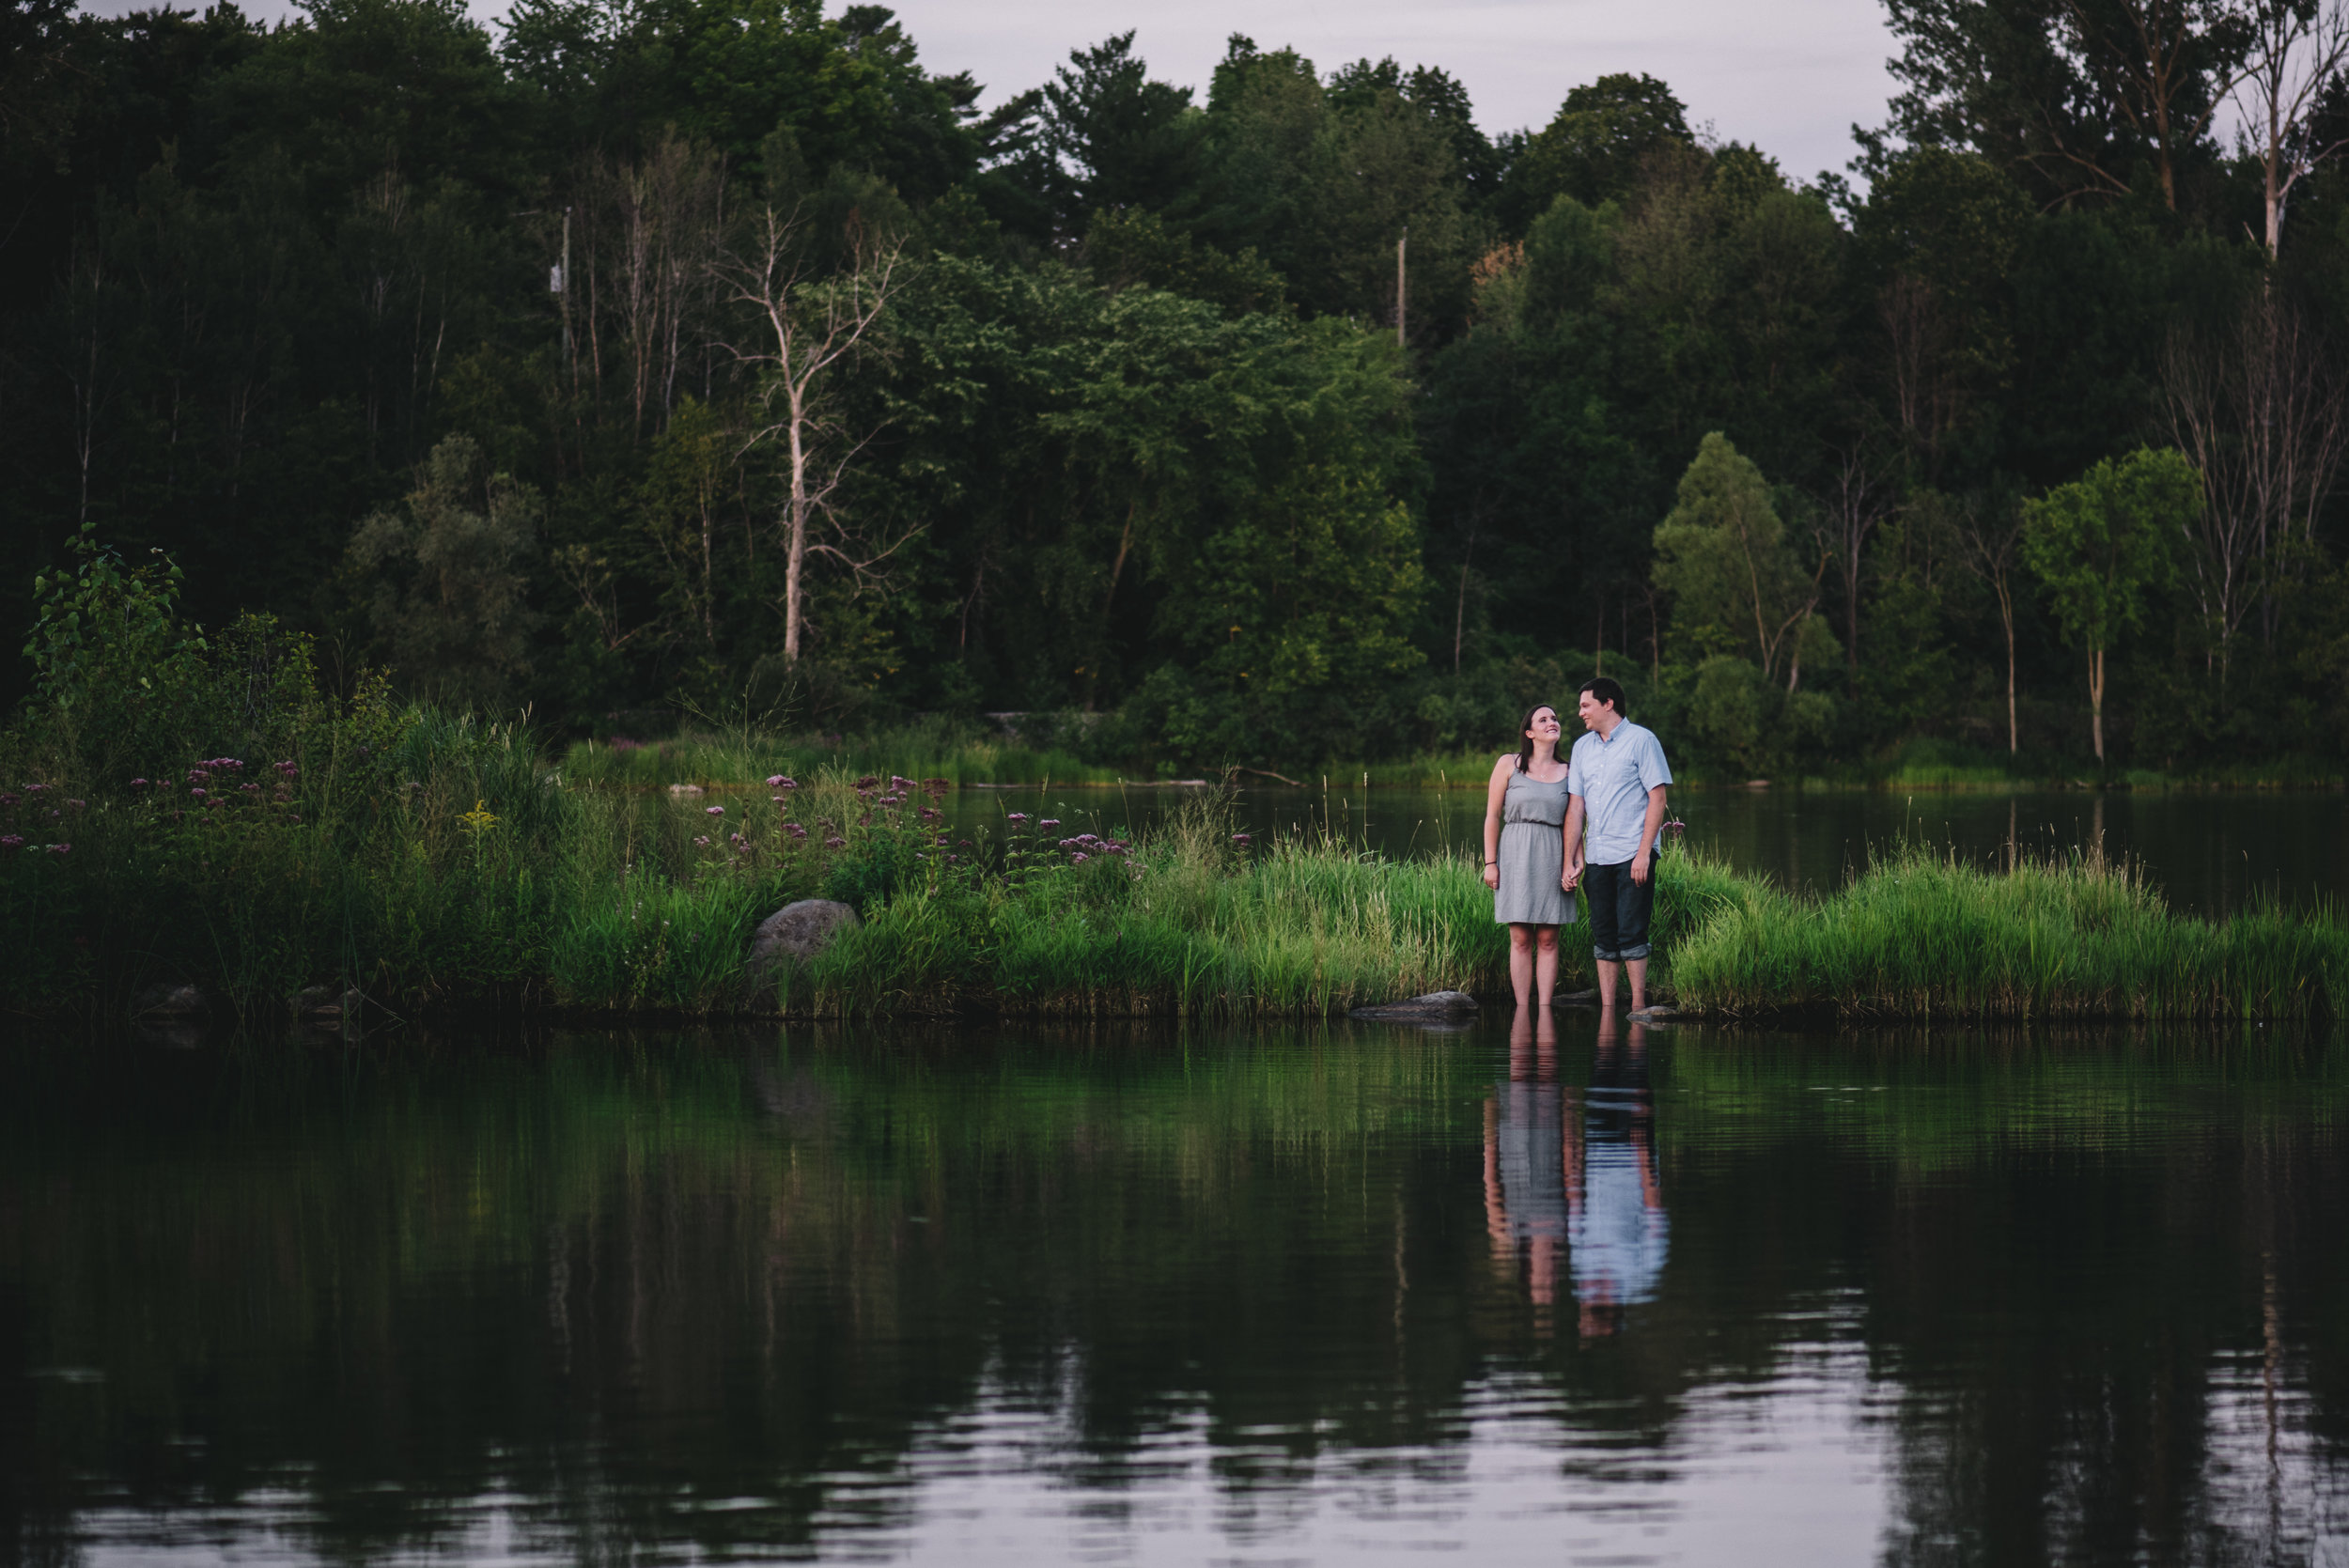 Mocha Tree Studios Ottawa Wedding and Engagement Photographer and Videographer Dark Moody Intimate Authentic Modern Romantic Cinematic Best Candid HOW TO PREPARE FOR YOUR ENGAGEMENT SESSION 5